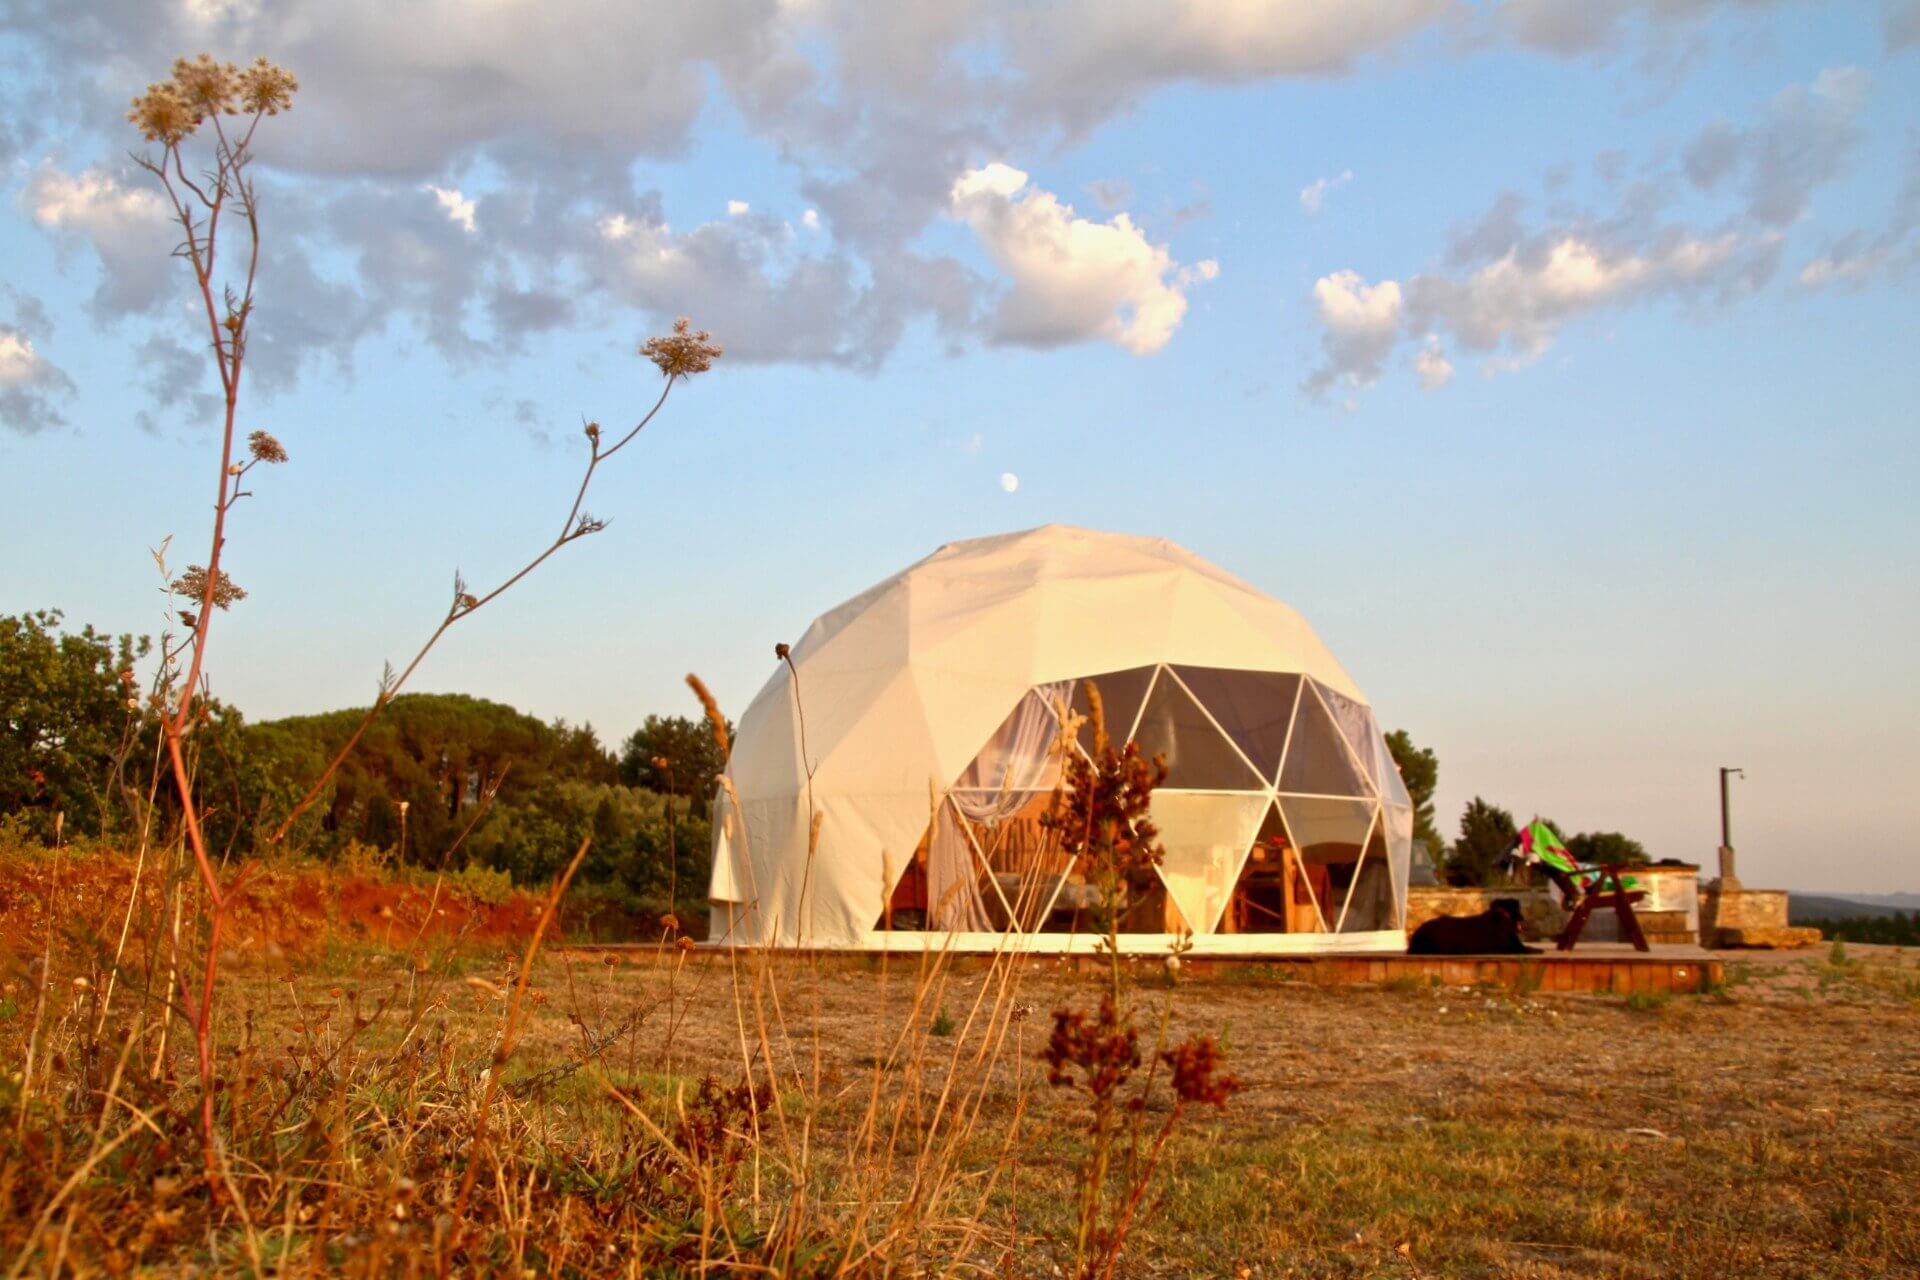 GLAMPING IL SOLE 3 PASSIONE GLAMPING